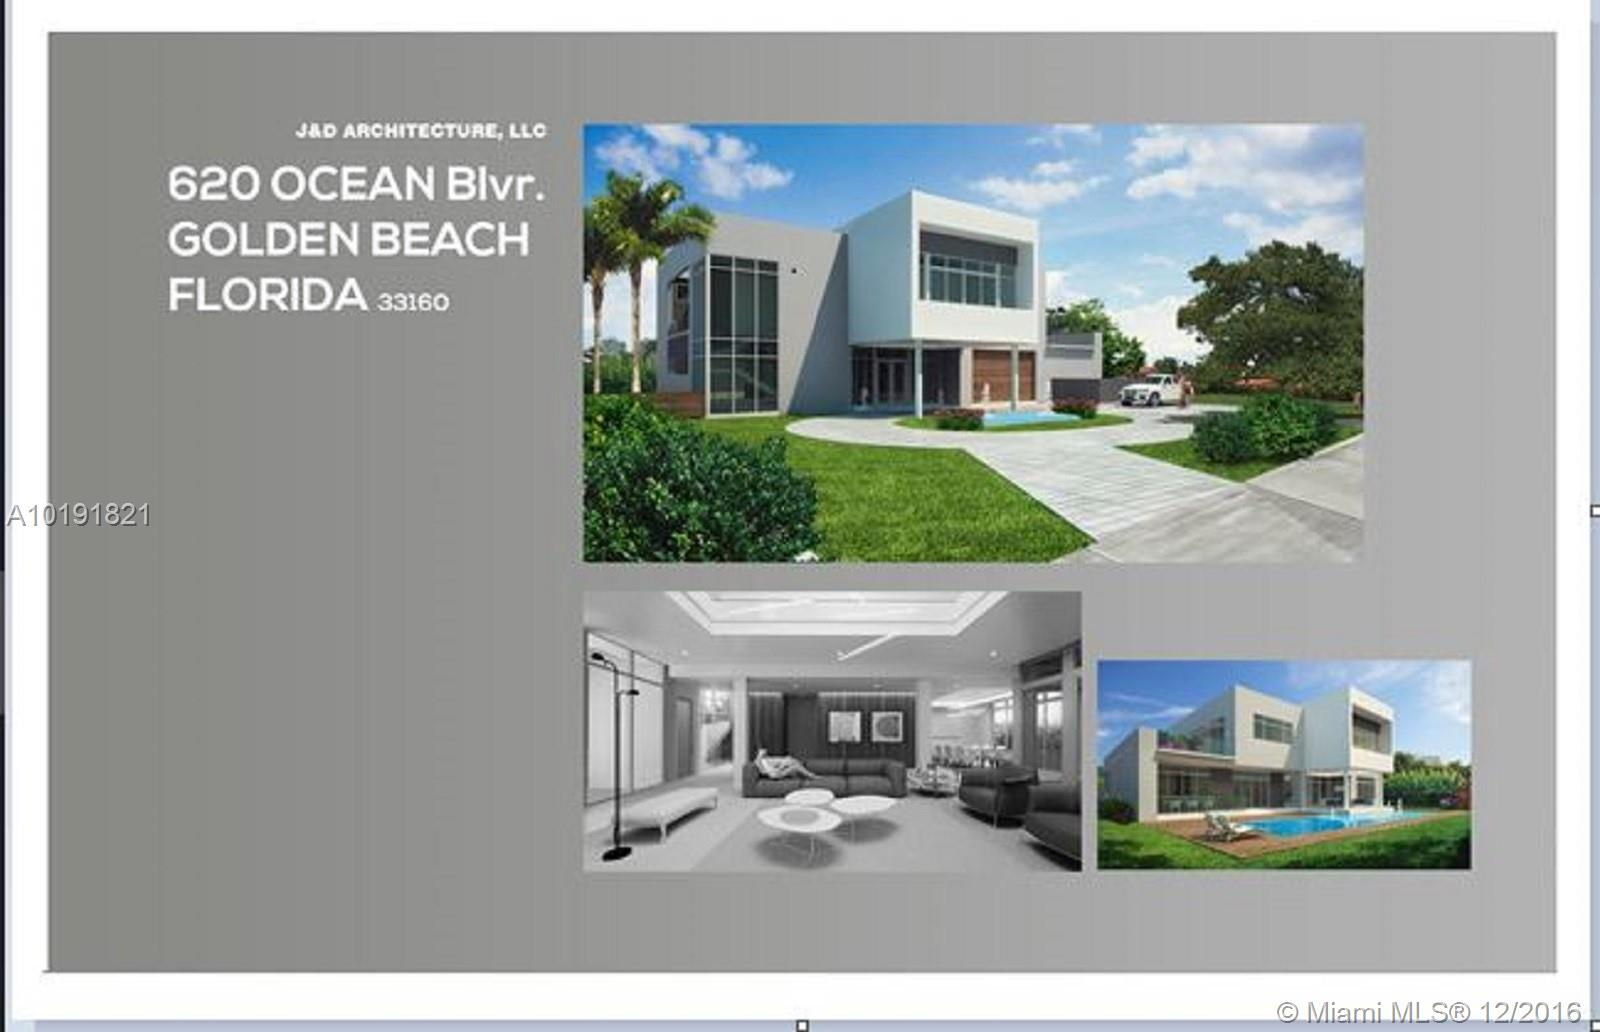 Details for 620 Ocean Blvd, Golden Beach, FL 33160